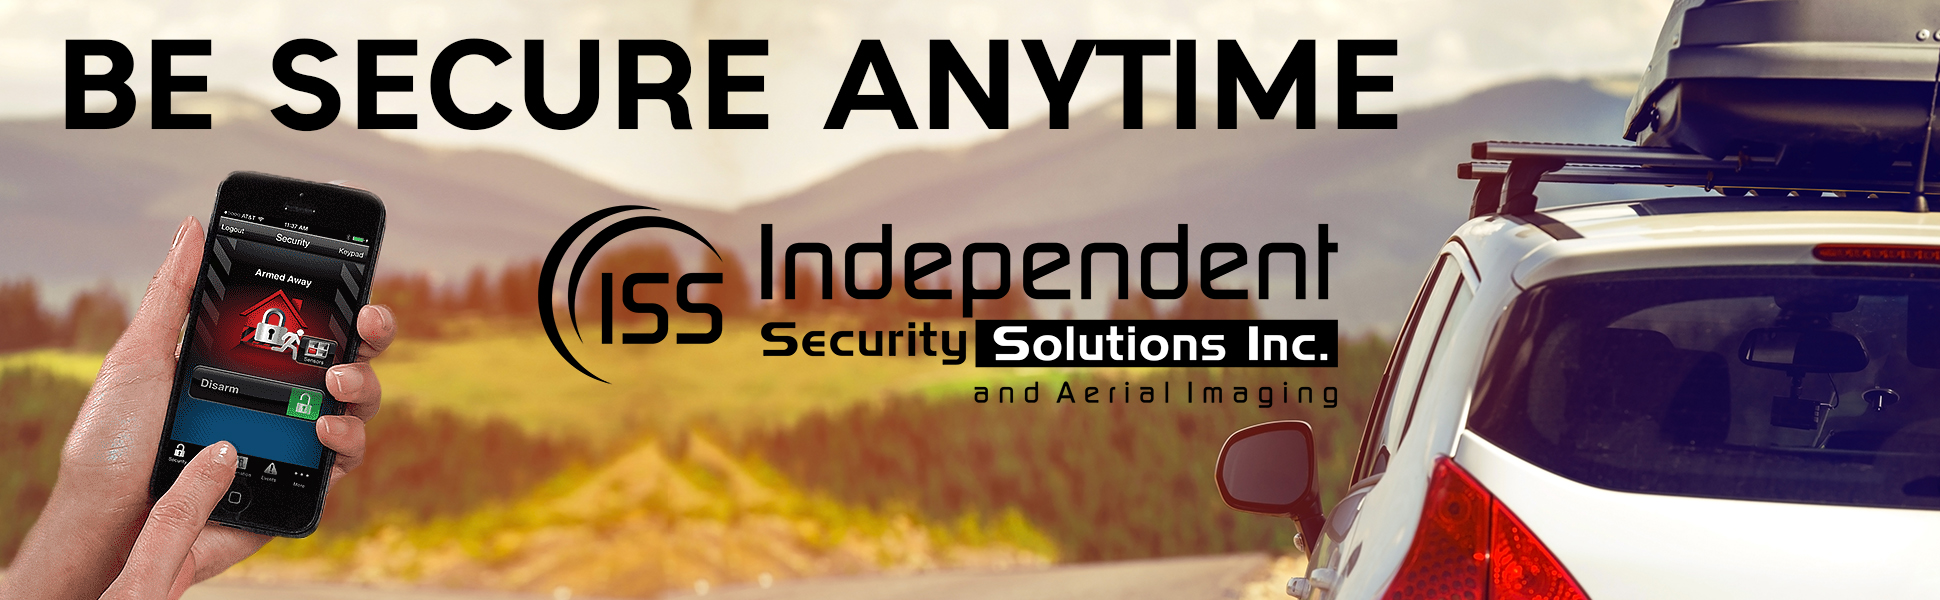 Independent Security Solution Inc